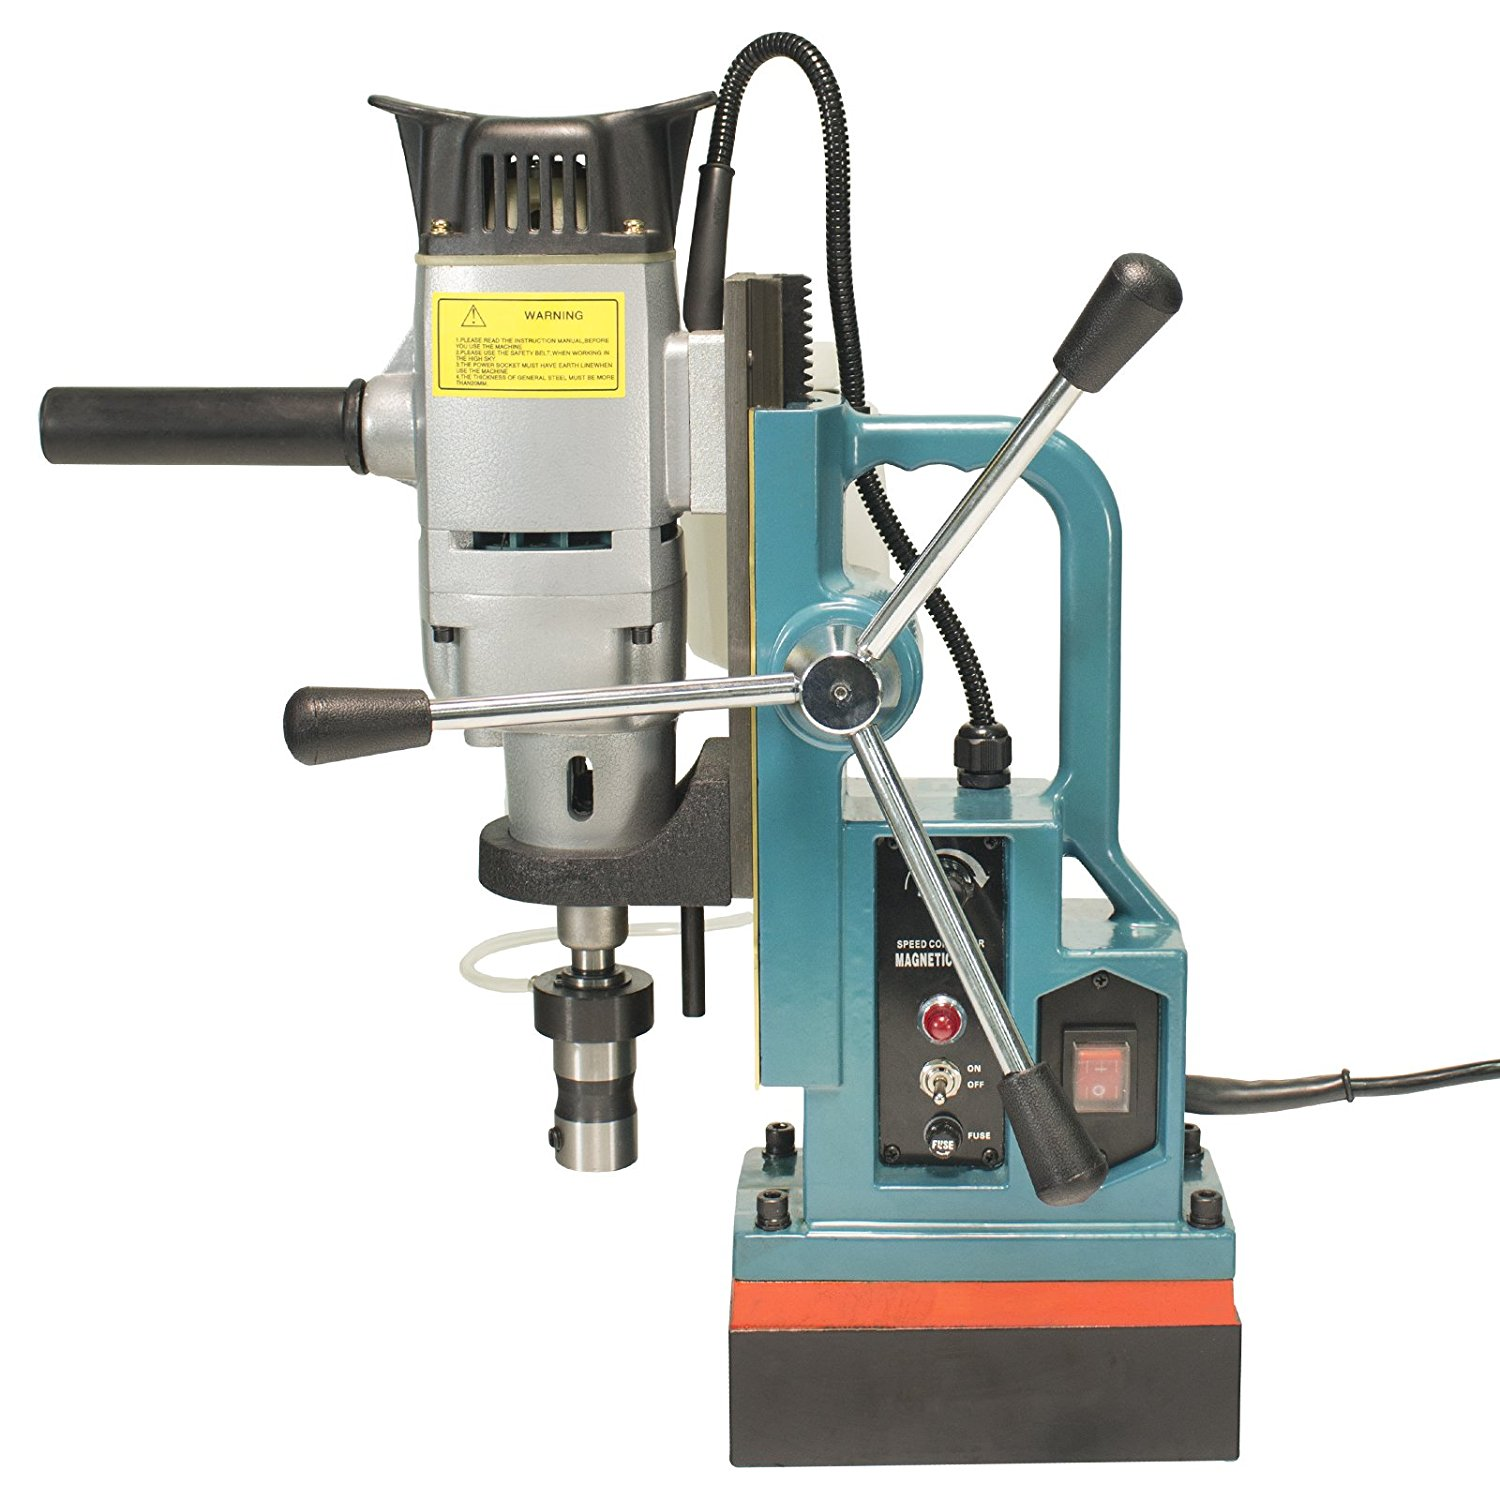 Steel drill press review